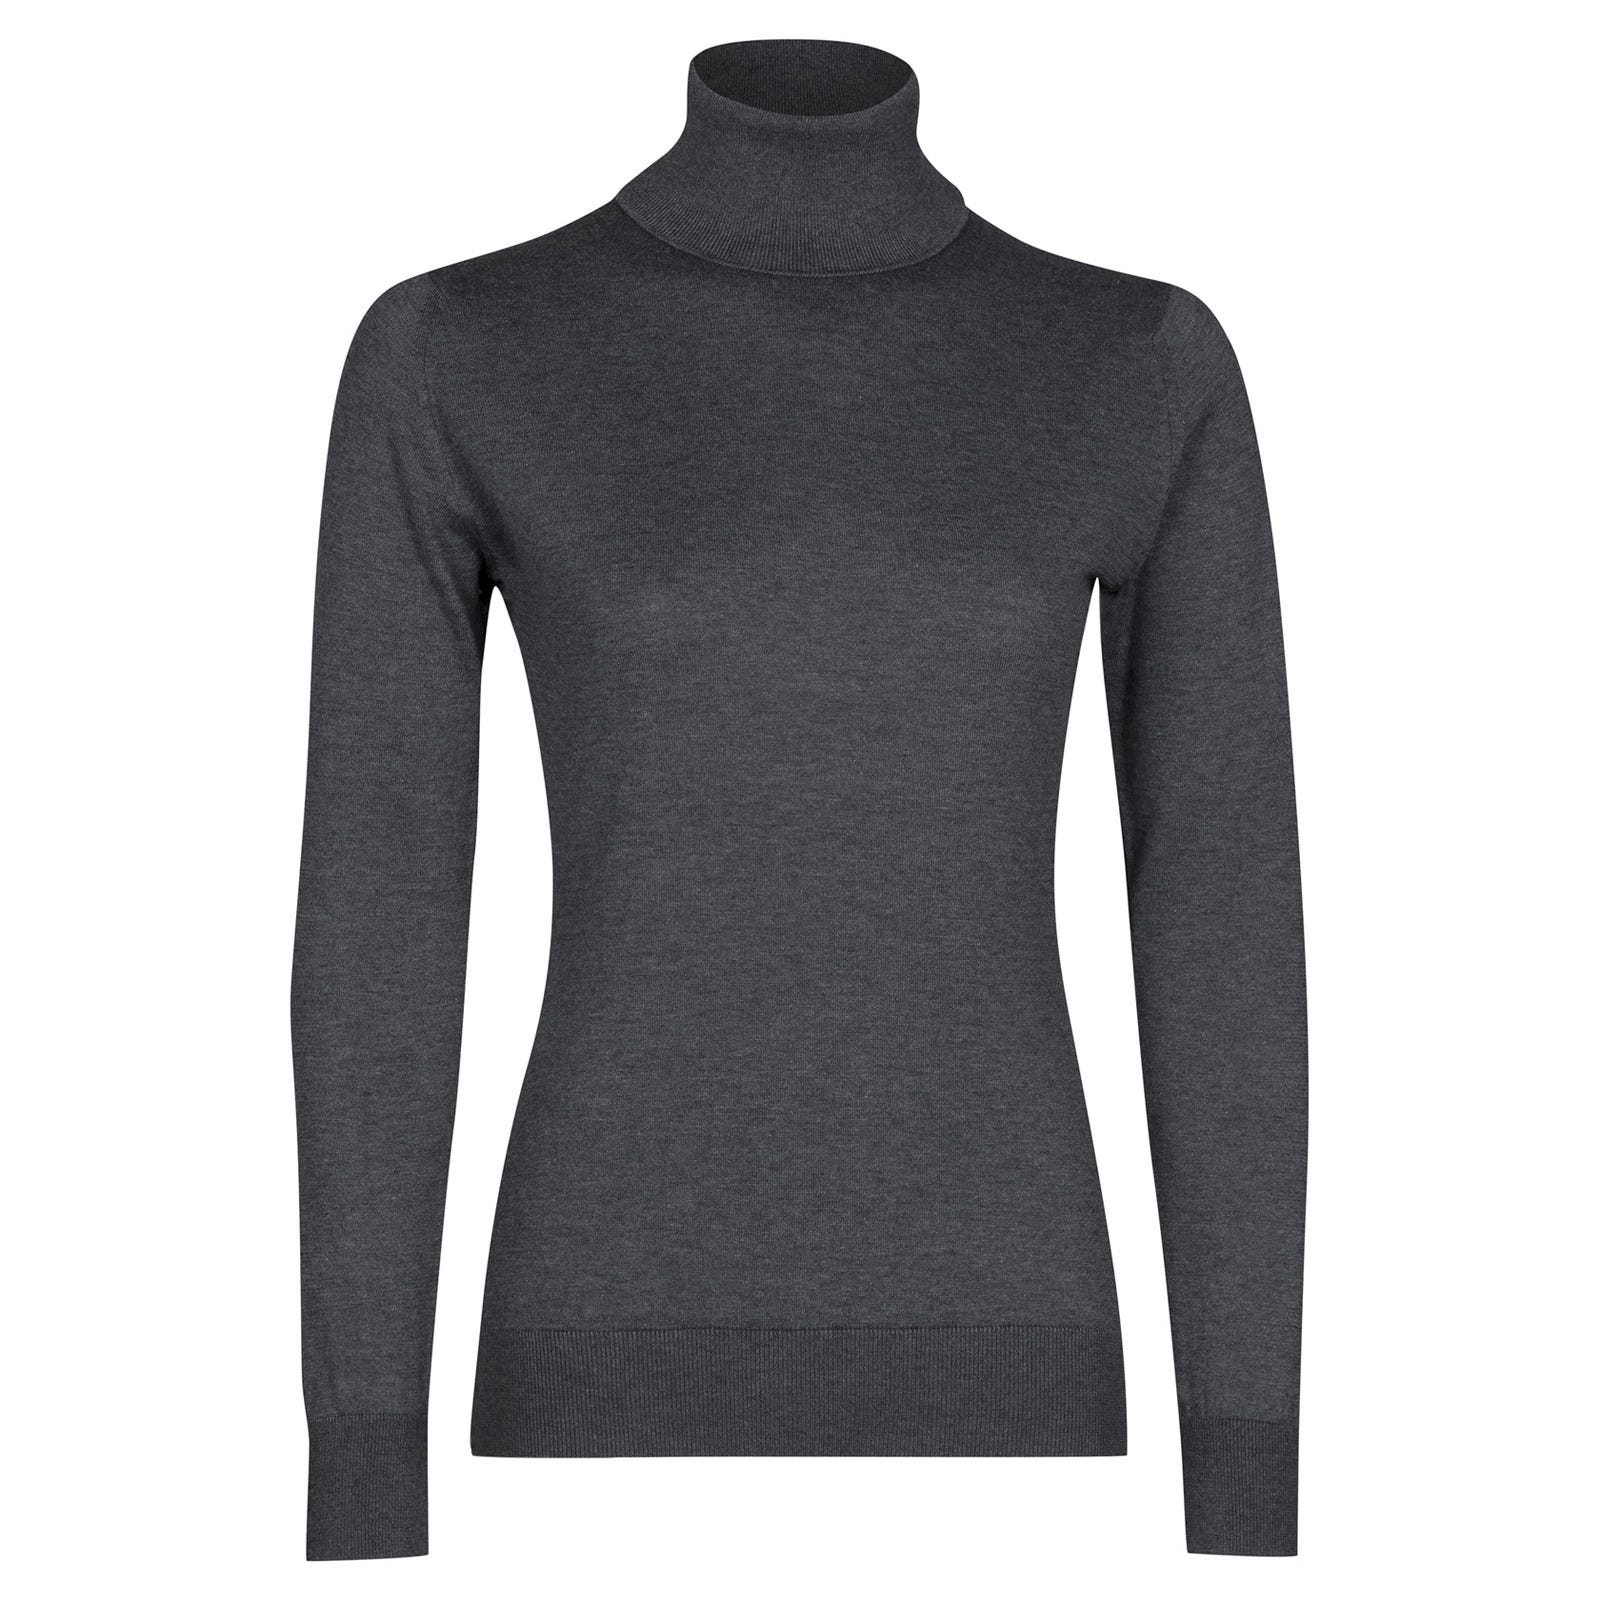 John Smedley pimlico Sea Island Cotton Sweater in Charcoal-M